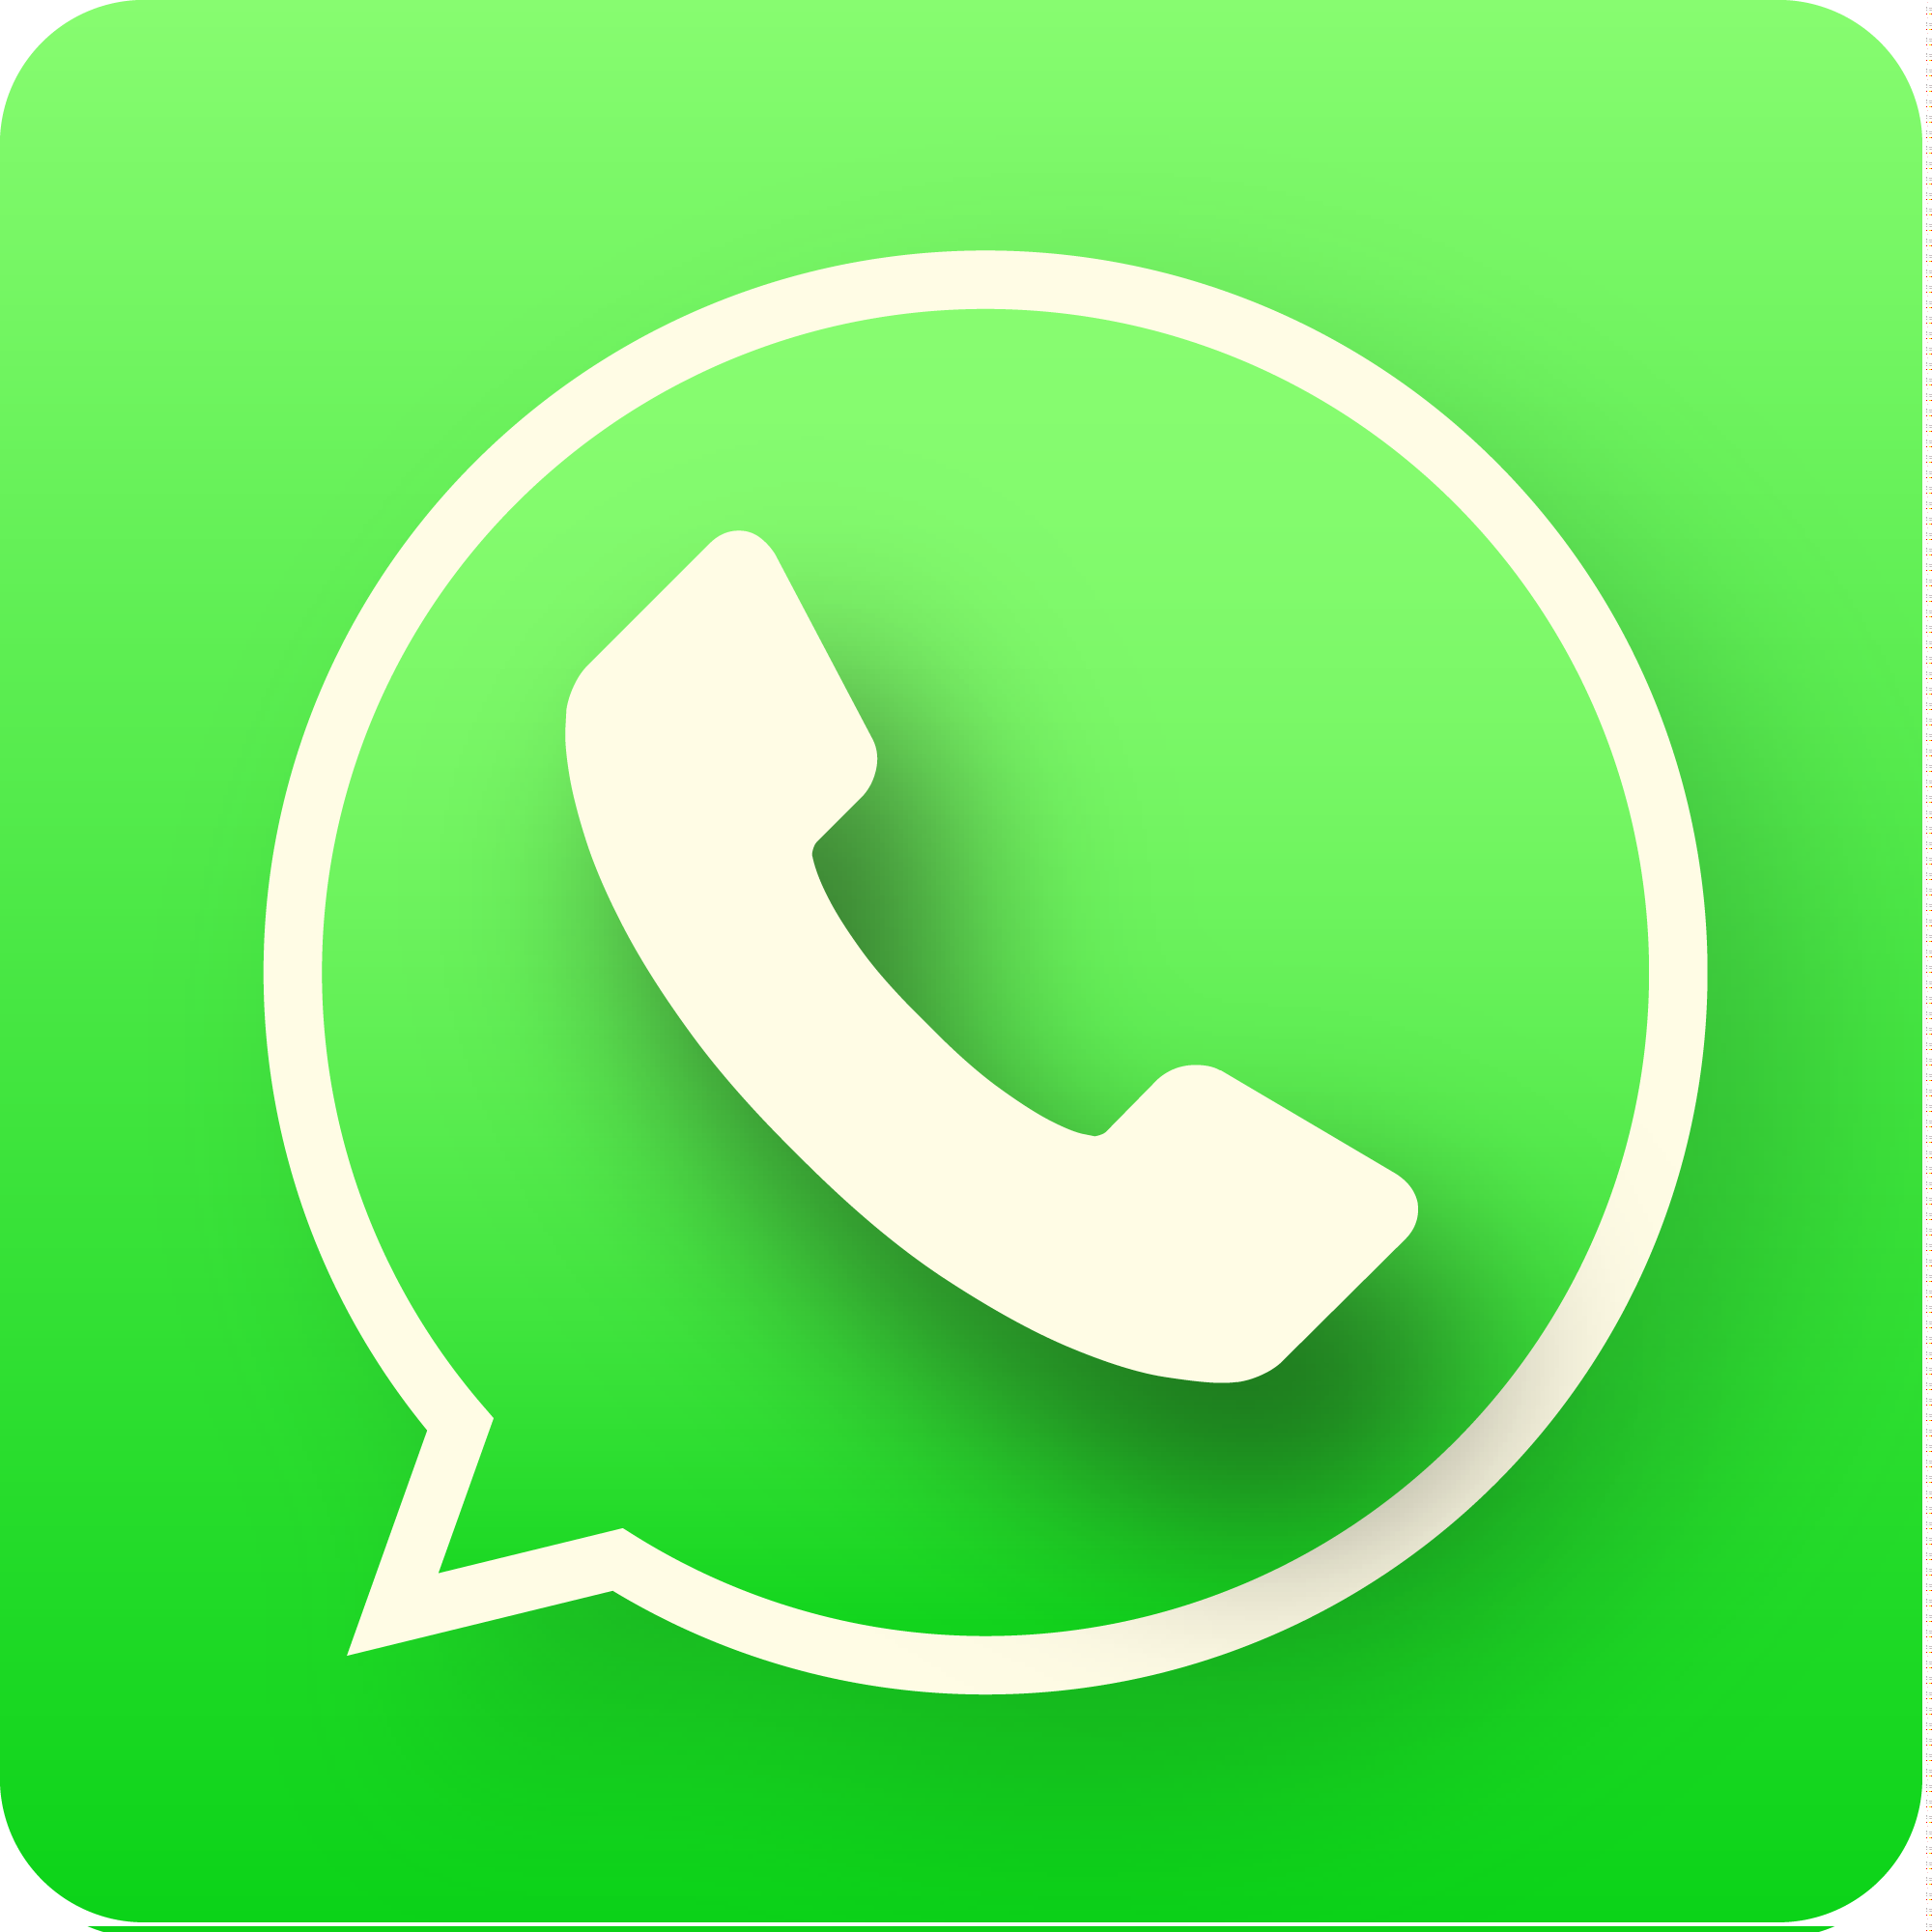 Whatsapp icon iphone png 6 » PNG Image.